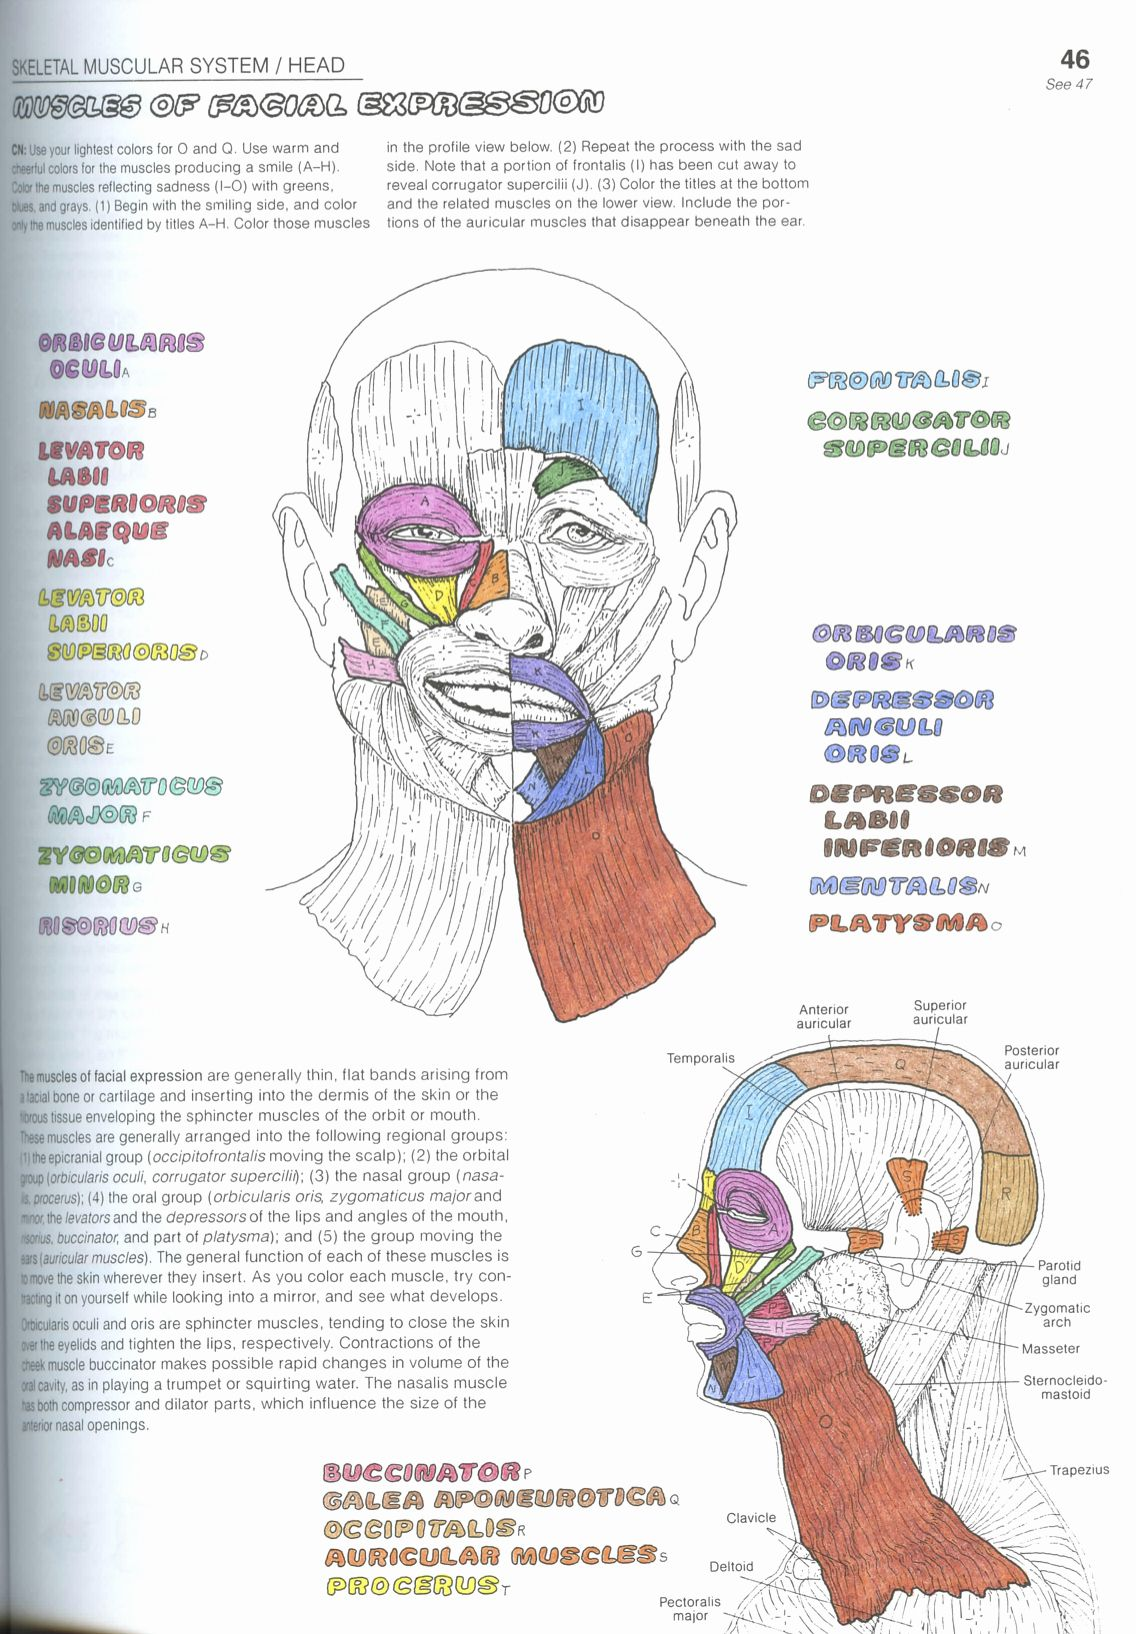 Best Anatomy Coloring Book Lovely Coloring Fantastic The Anatomy Coloring Book 4th Edition Anatomy Coloring Book Coloring Books Words Coloring Book